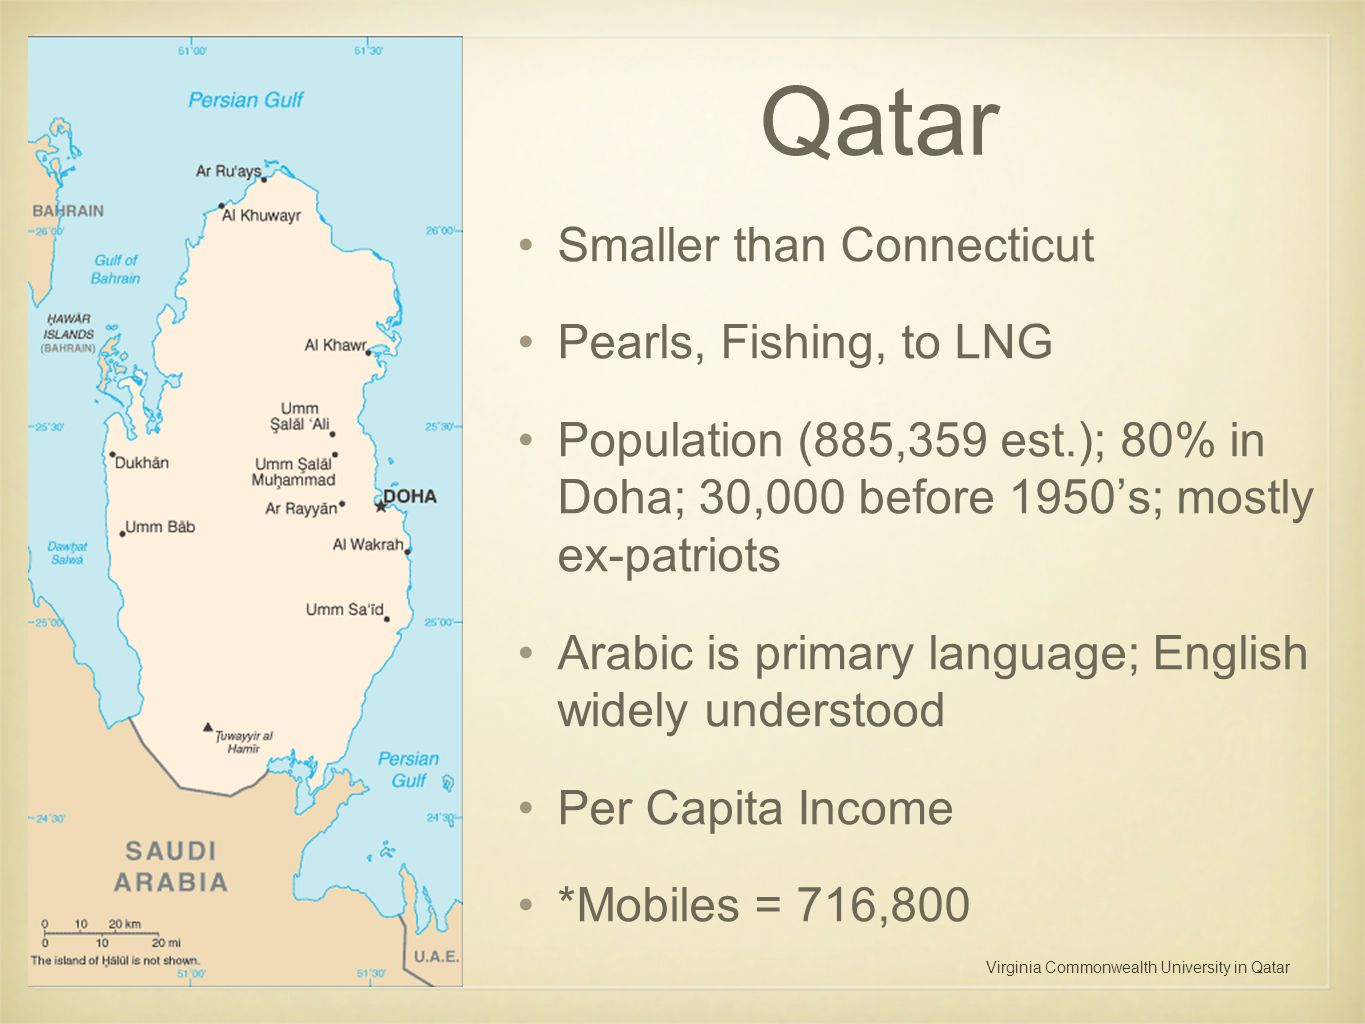 Virginia Commonwealth University in Qatar Qatar Smaller than Connecticut Pearls, Fishing, to LNG Population (885,359 est.); 80% in Doha; 30,000 before